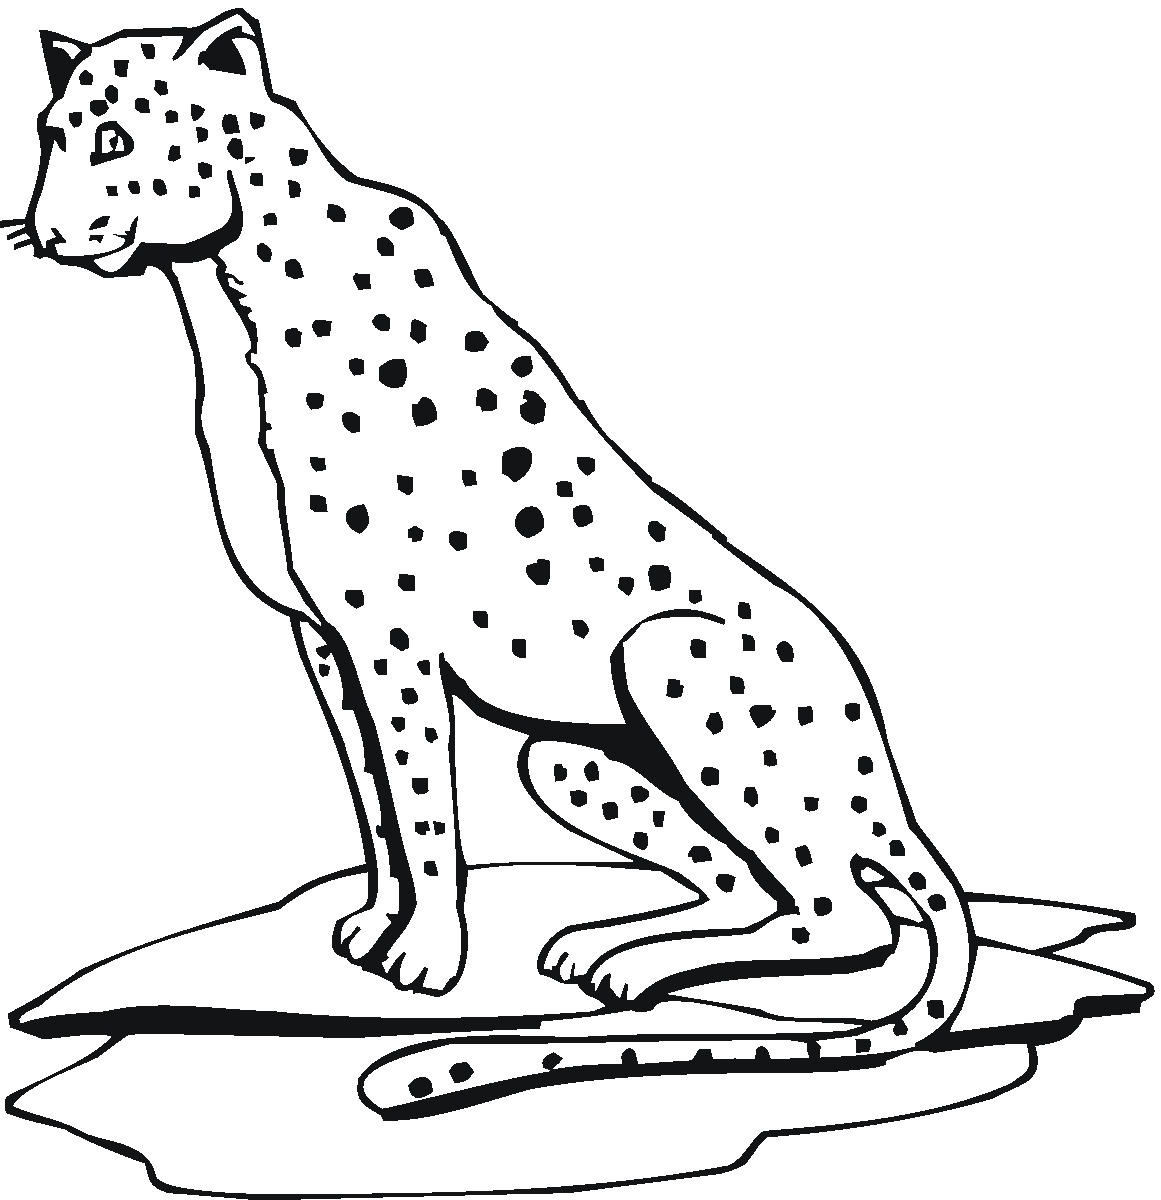 coloring pages cheetah - photo#23